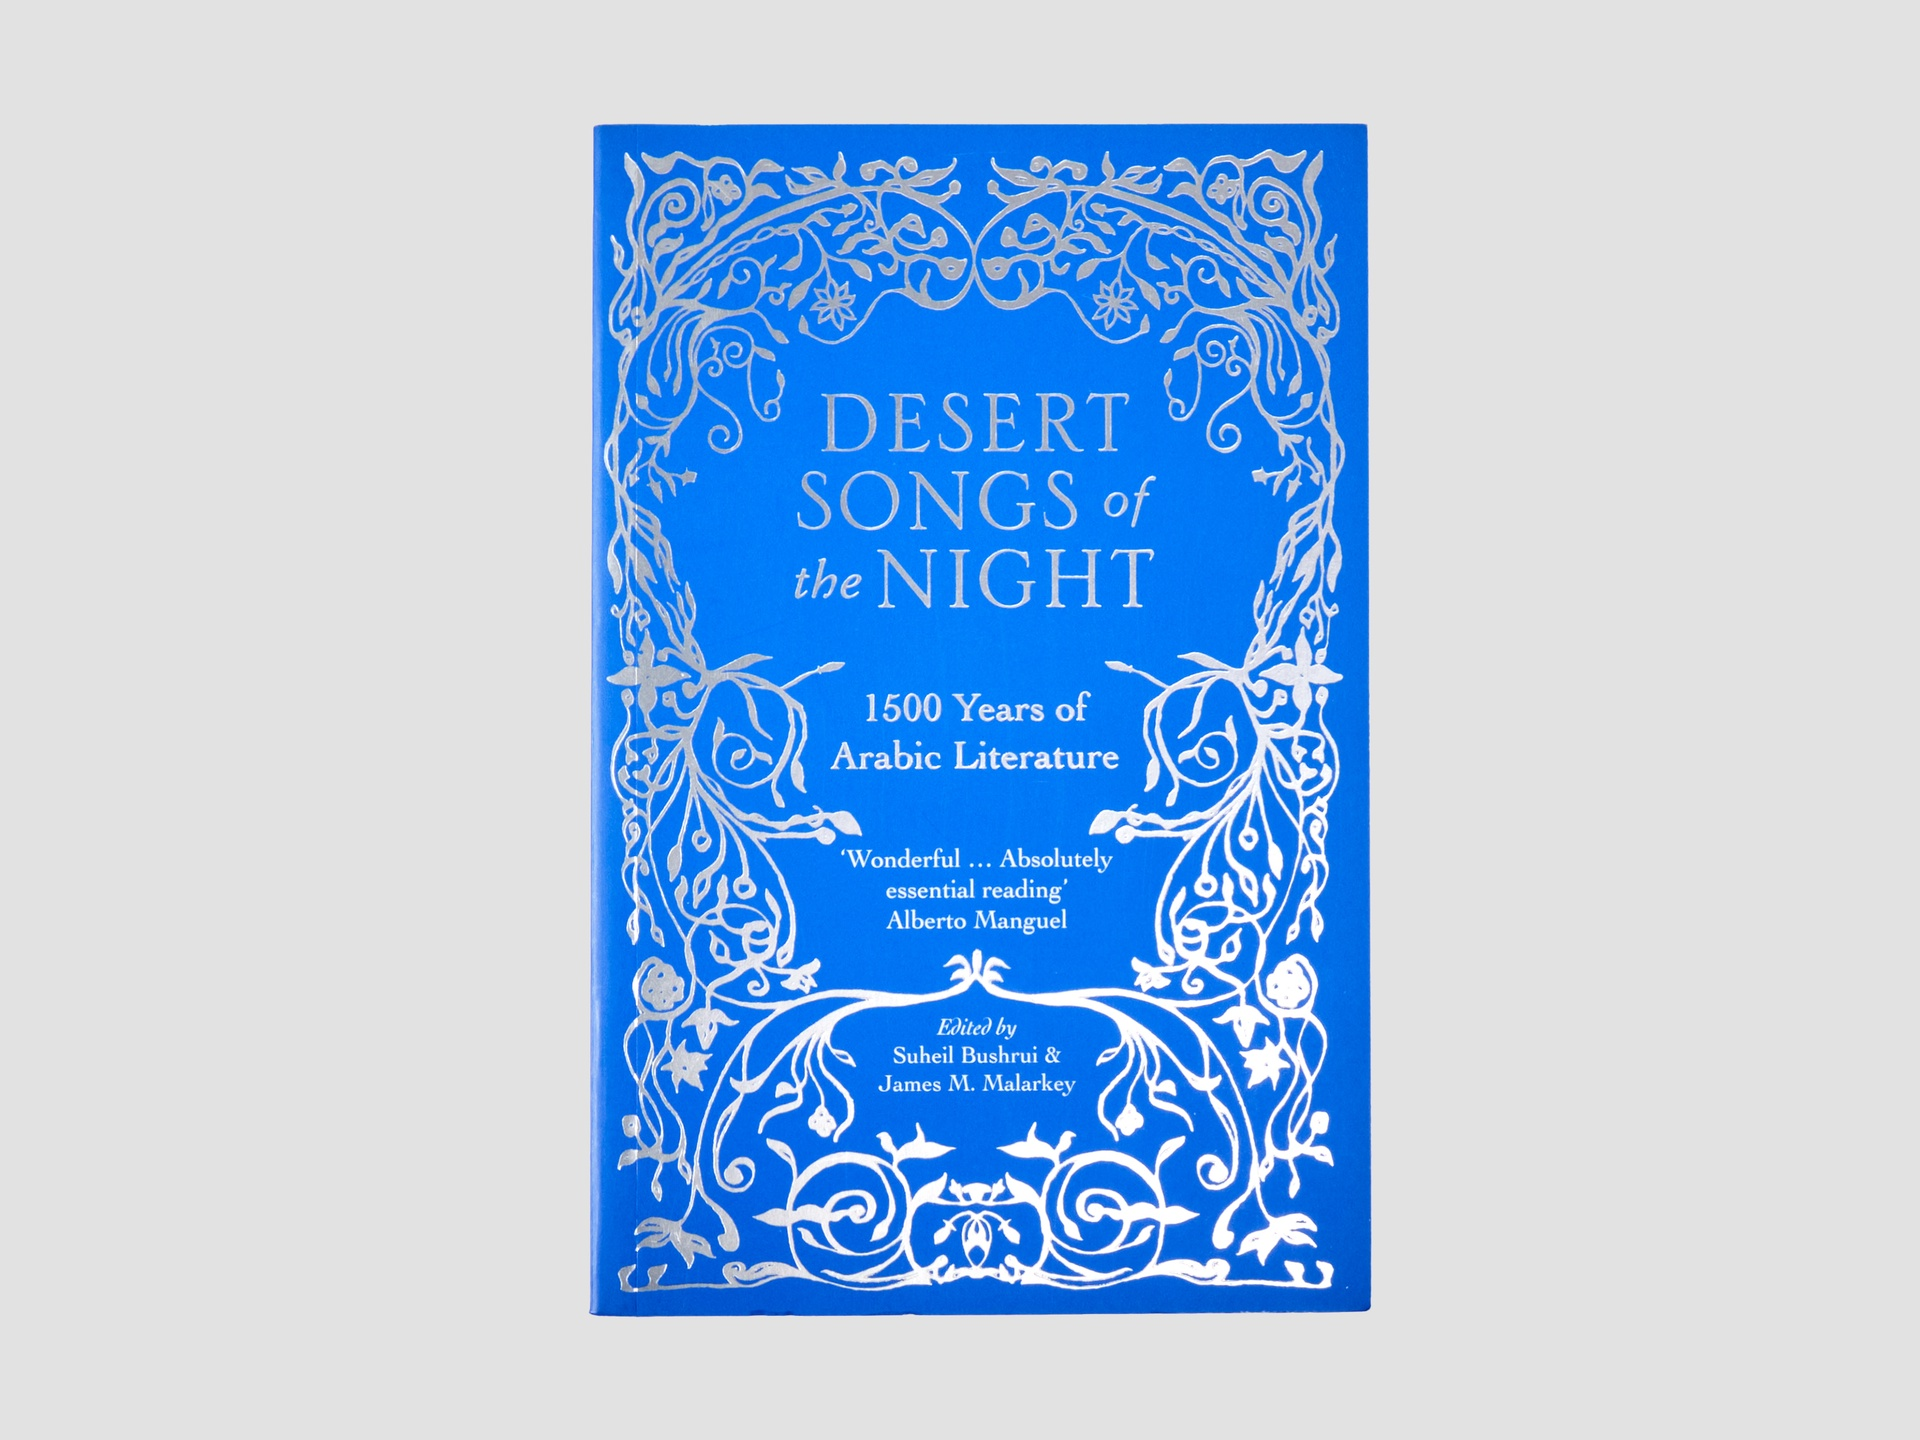 Desert Songs of the Night: 1500 Years of Arabic Literature